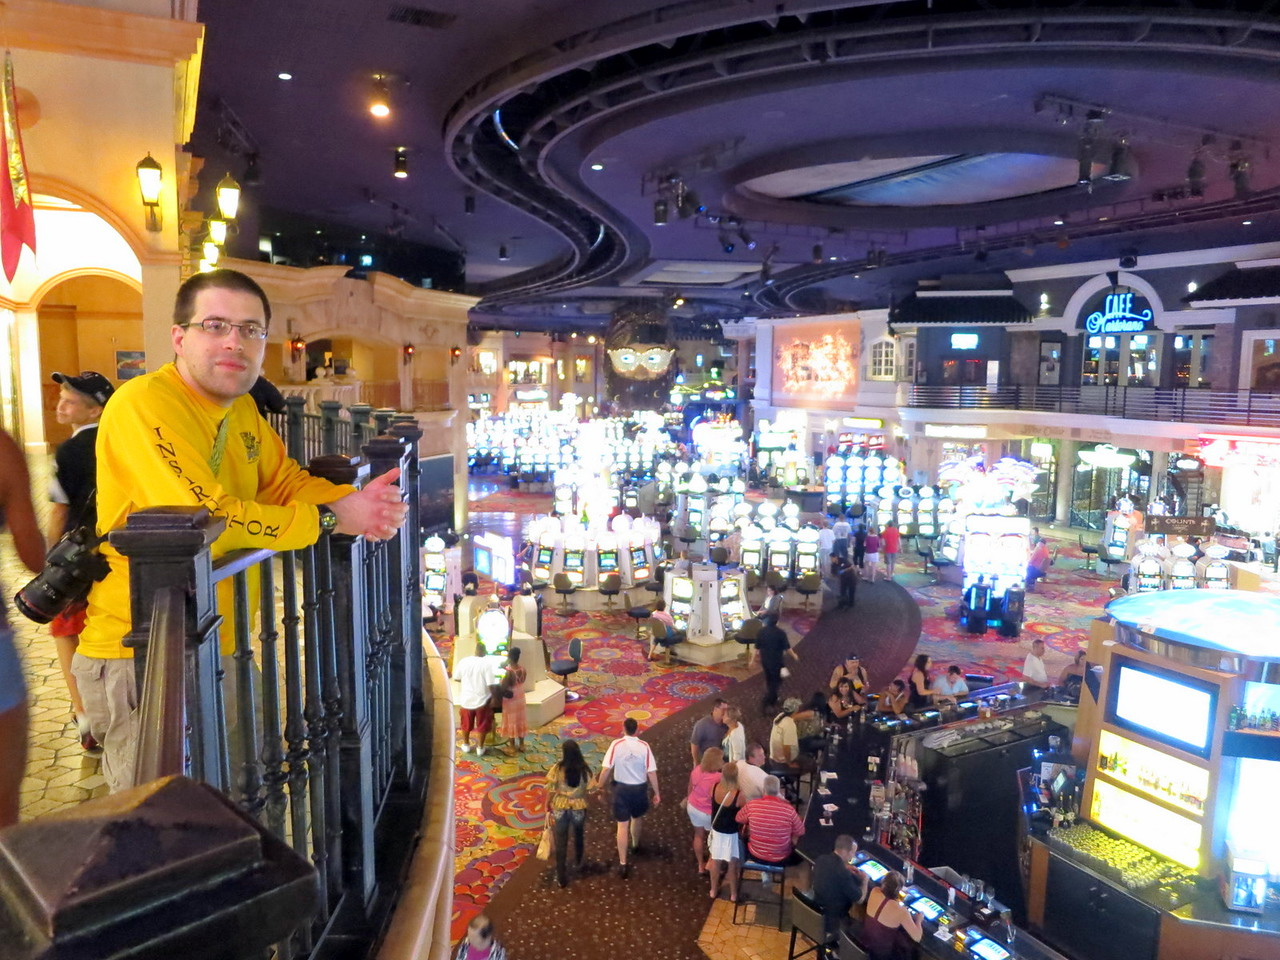 Ted inside the Rio casino.